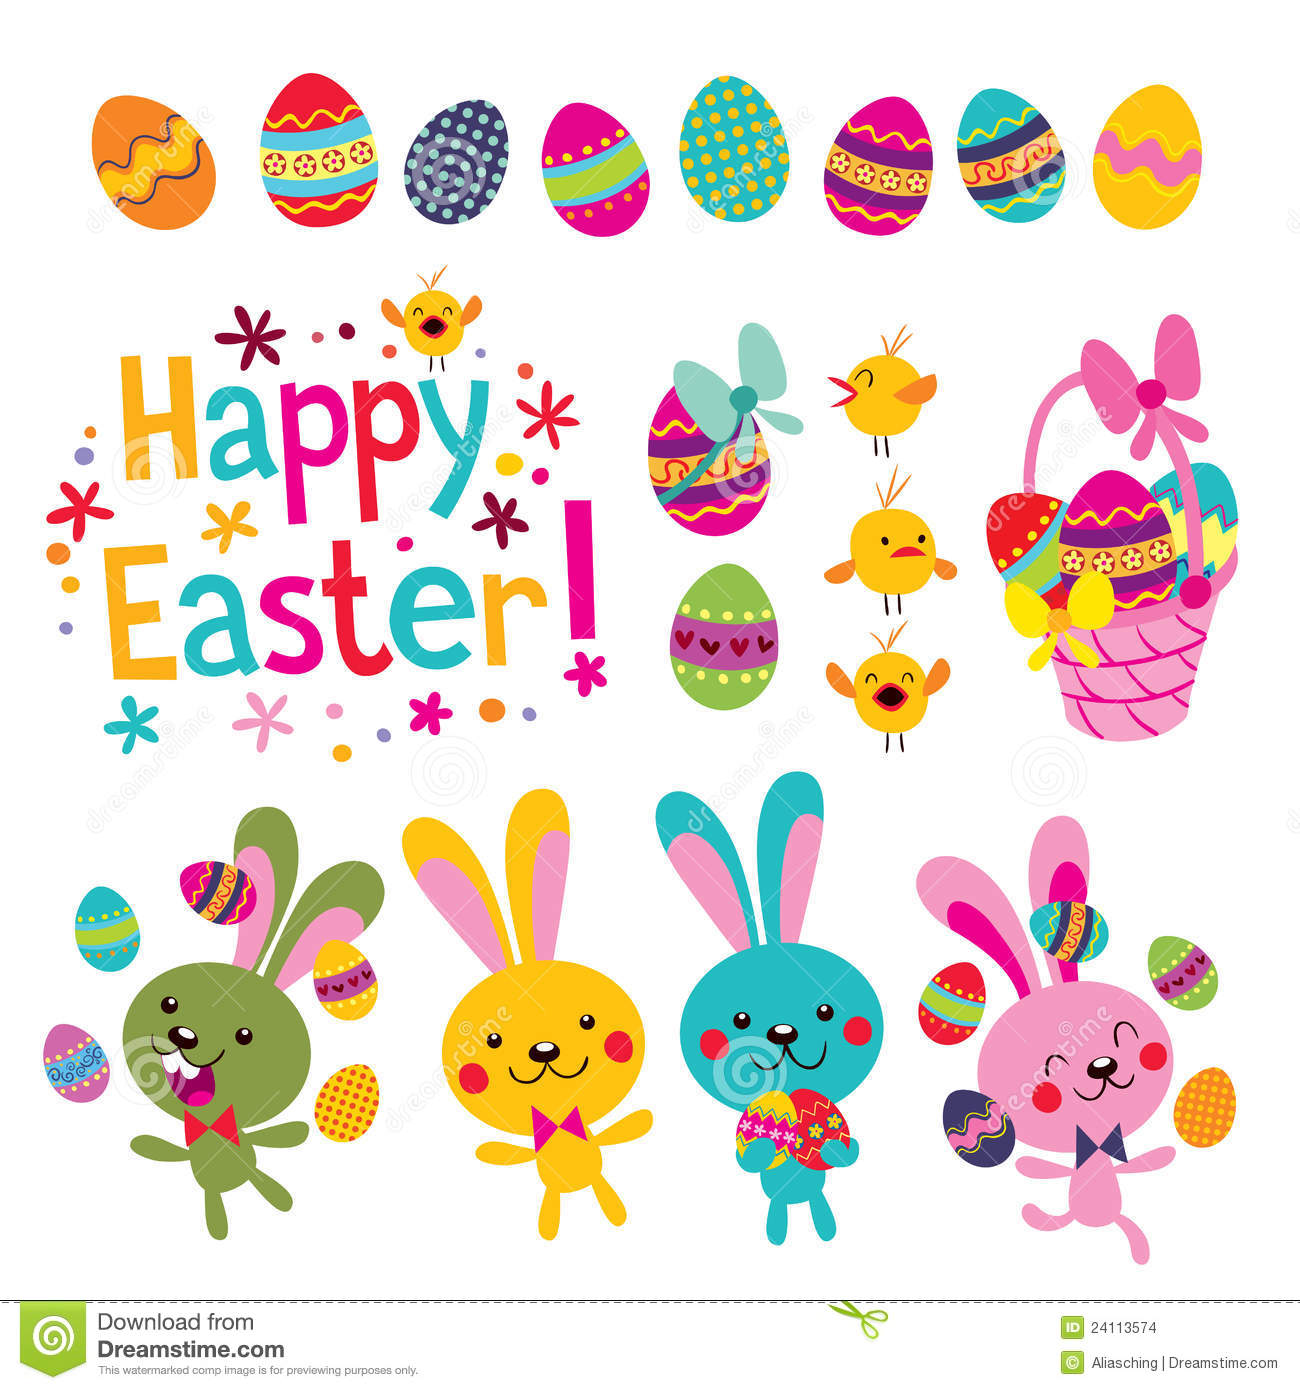 Happy Easter Stock Images - Image: 24113574